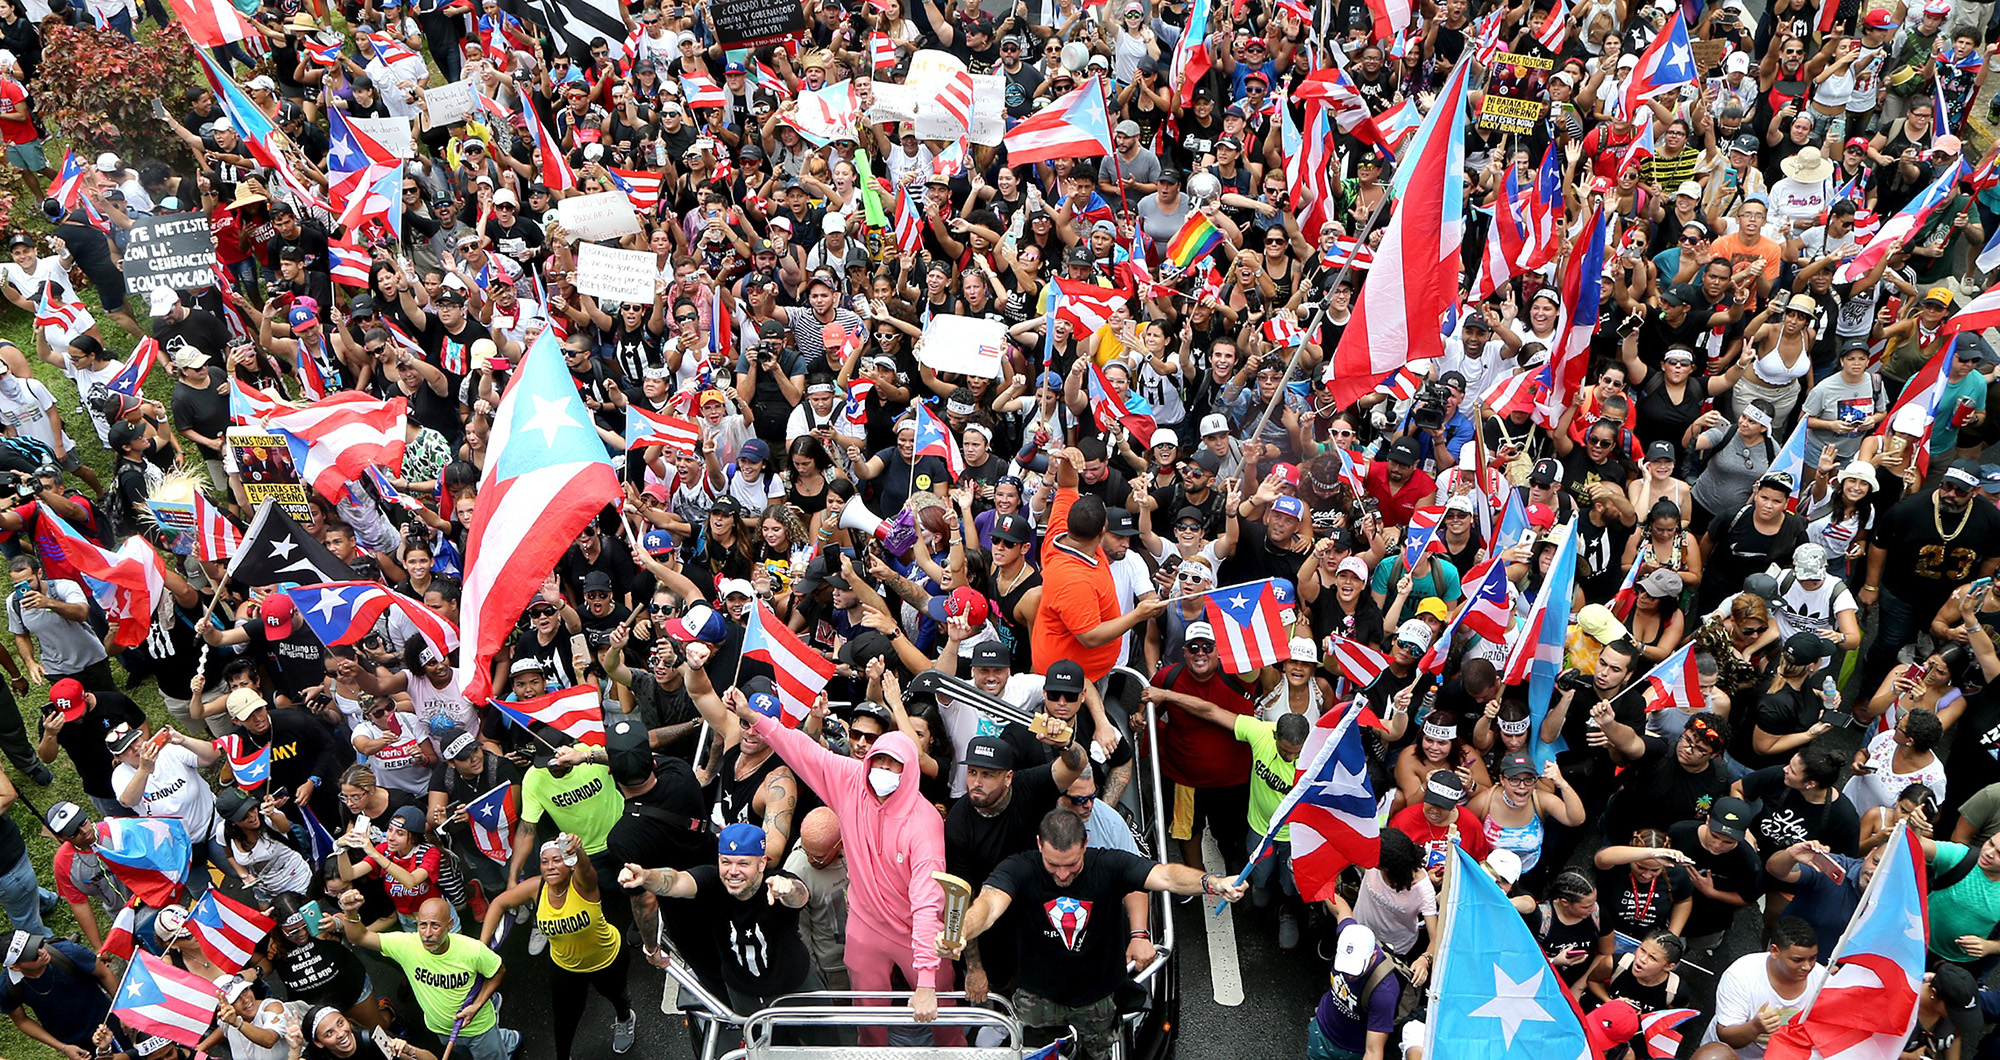 In Puerto Rico, it's the calm after the storm as protesters savor Rossello's resignation